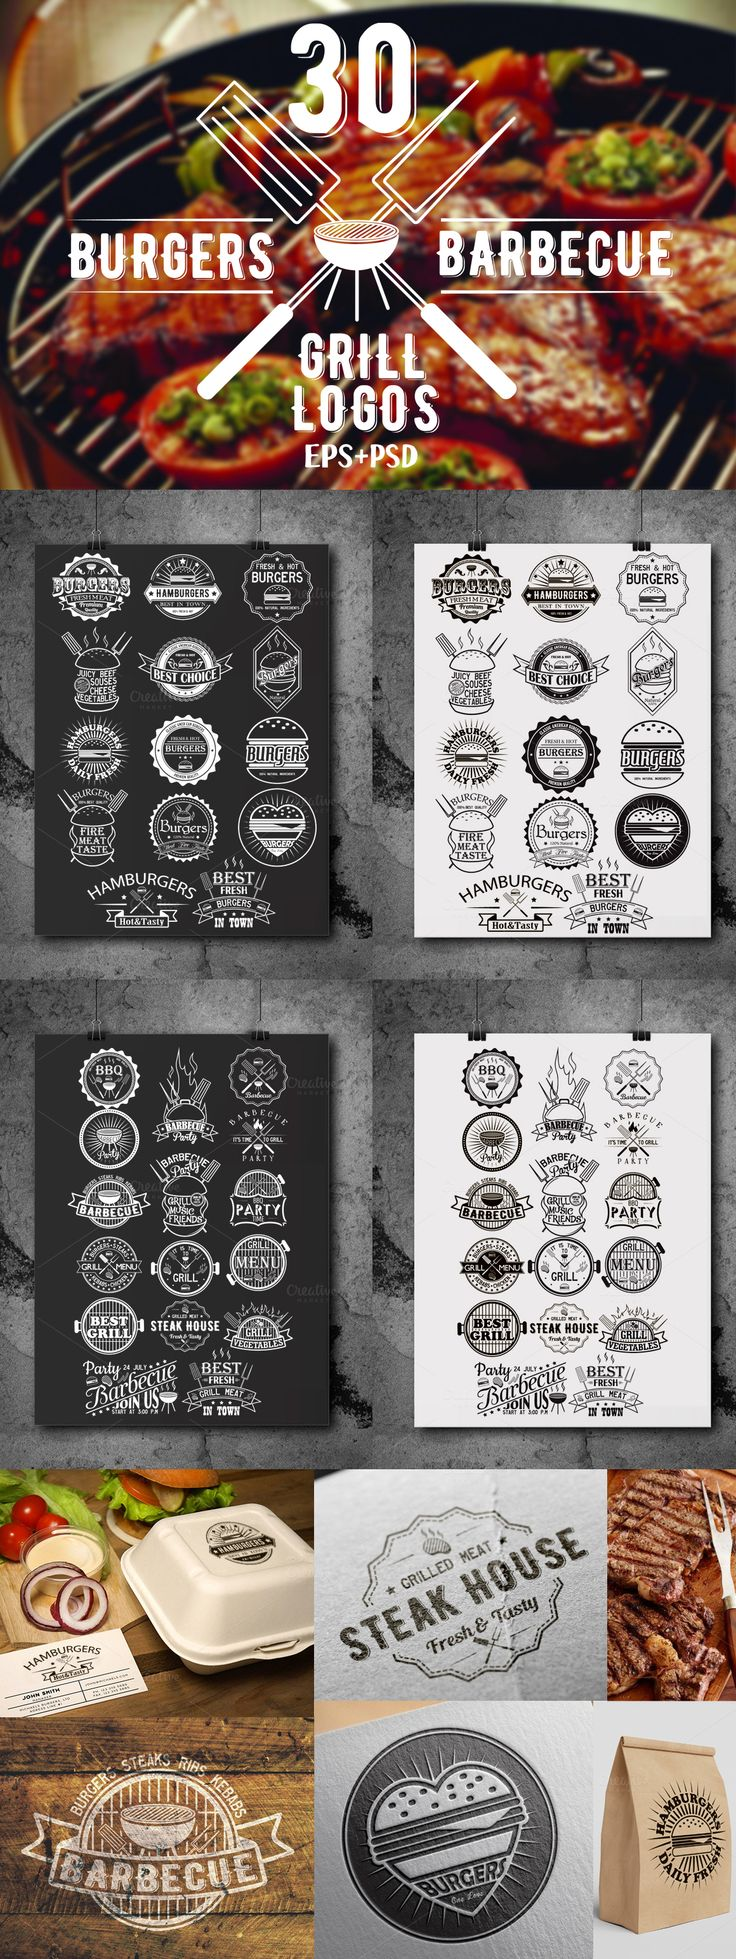 That's 30 vector logo templates that you can use for branding projects, labels, typography and more. If you are looking for a elegant logo, a badge or a simple typography logo for business then this is the set you need! #design Download: https://creativemarket.com/SiberianArt/375882-30-Burgers-and-barbecue-logos-bundle?u=ksioks